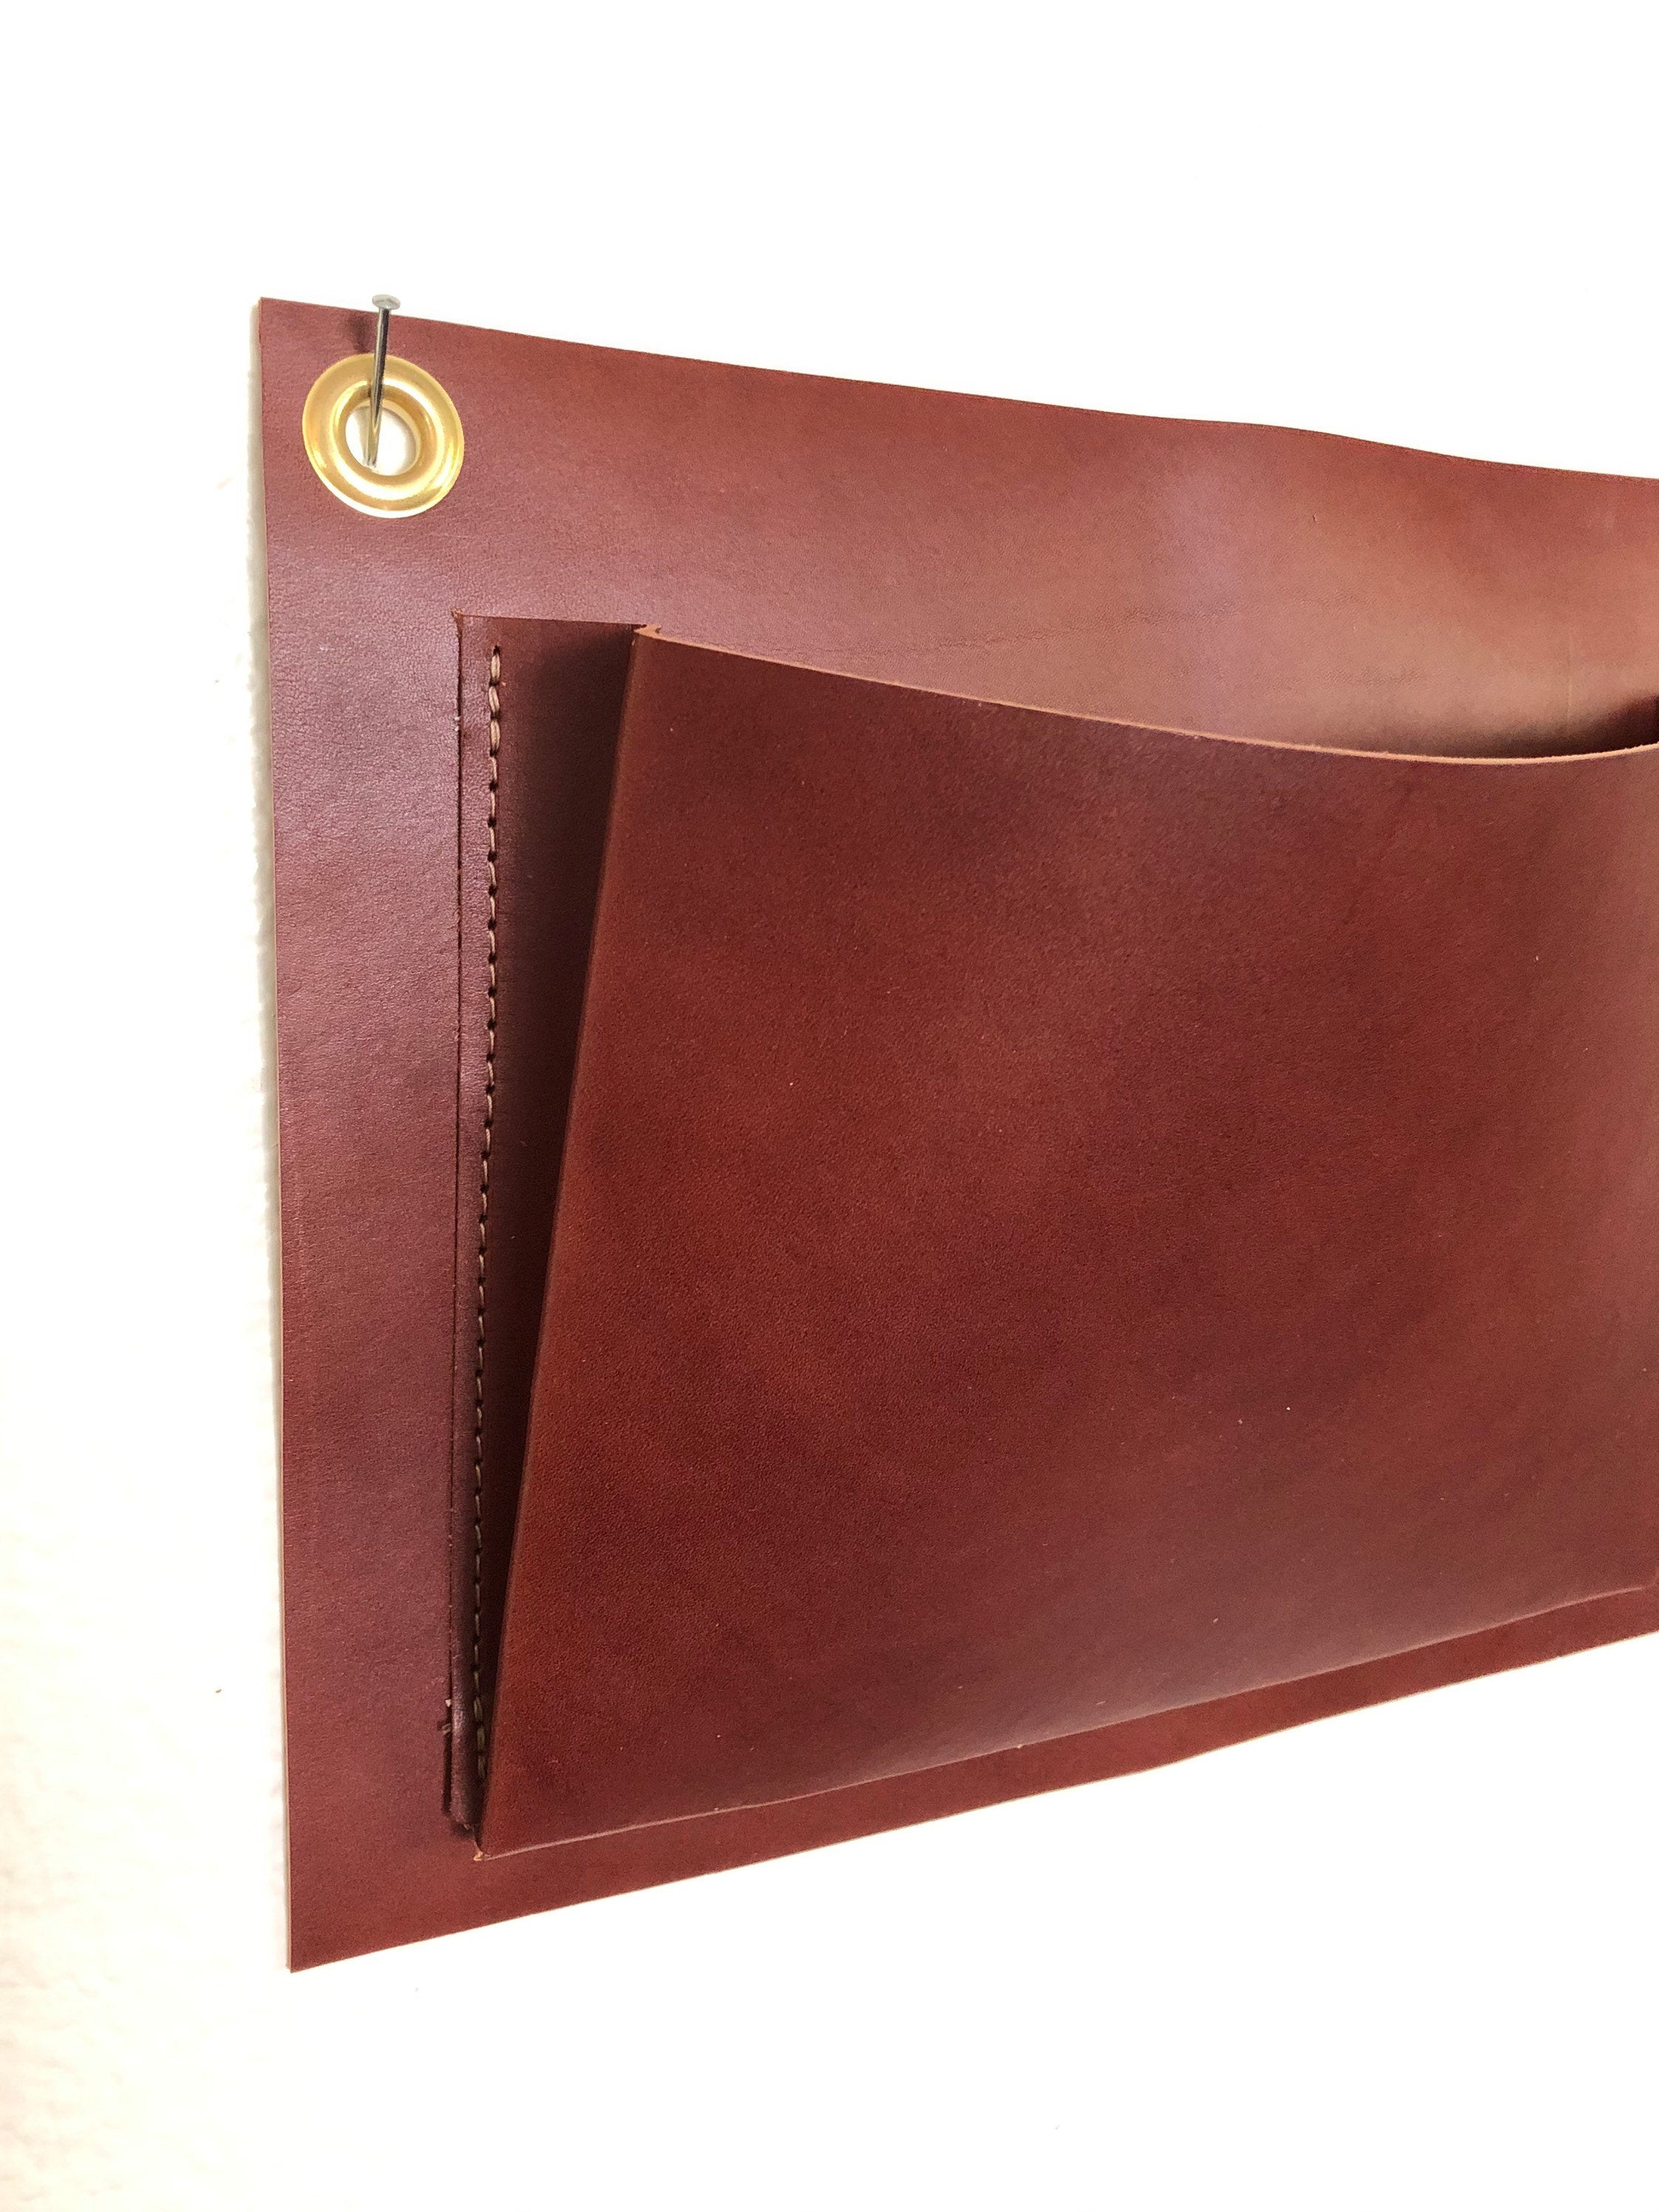 Brown leather wall pocket with brass grommet